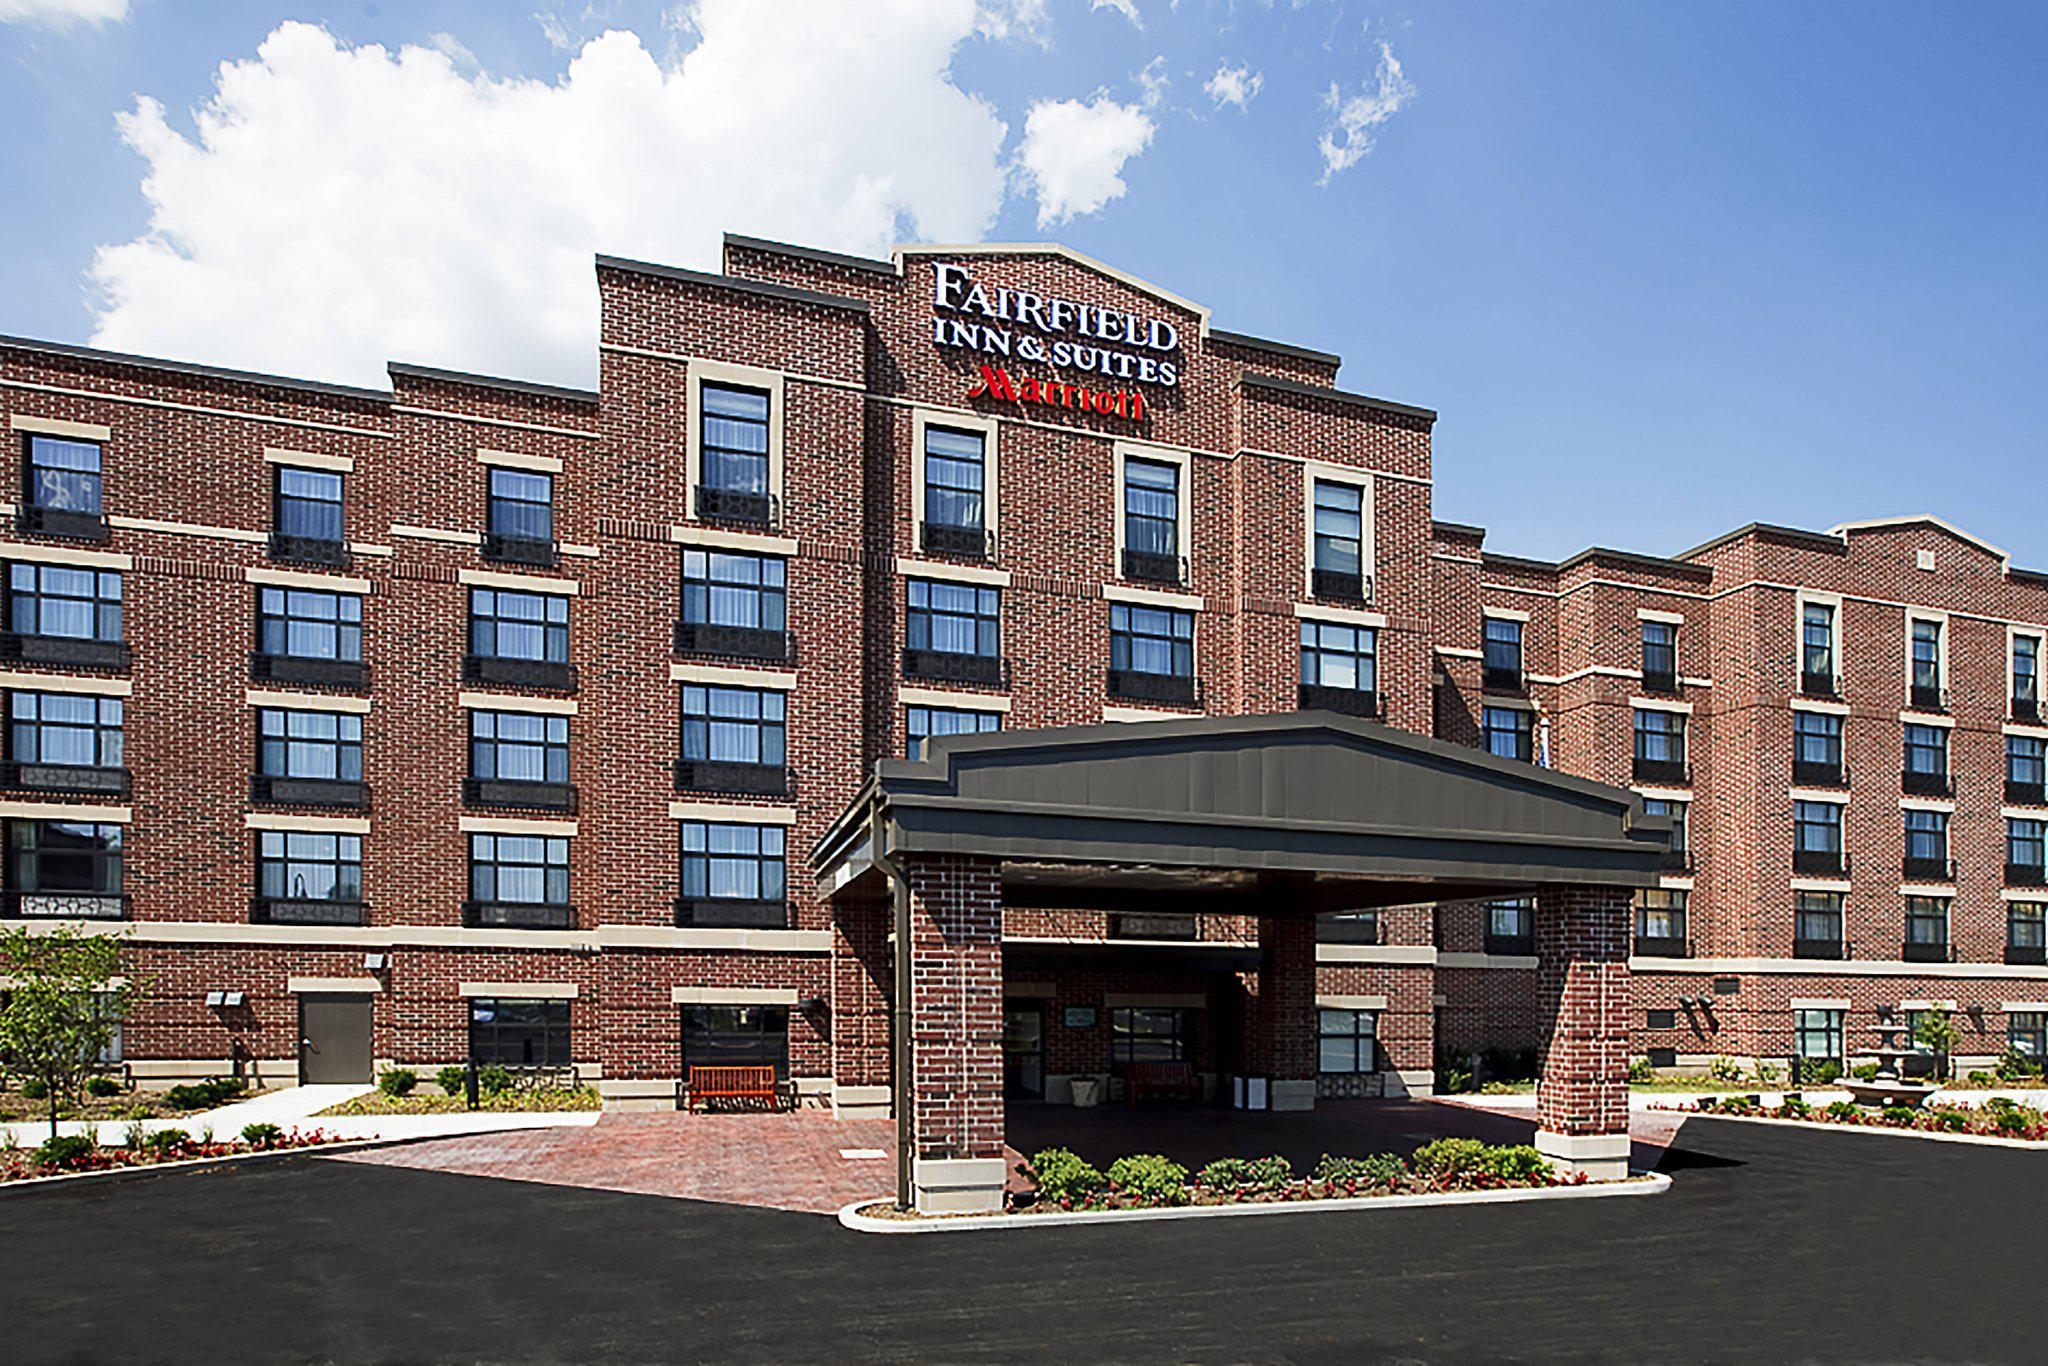 Fairfield Inn & Suites by Marriott South Bend at Notre Dame